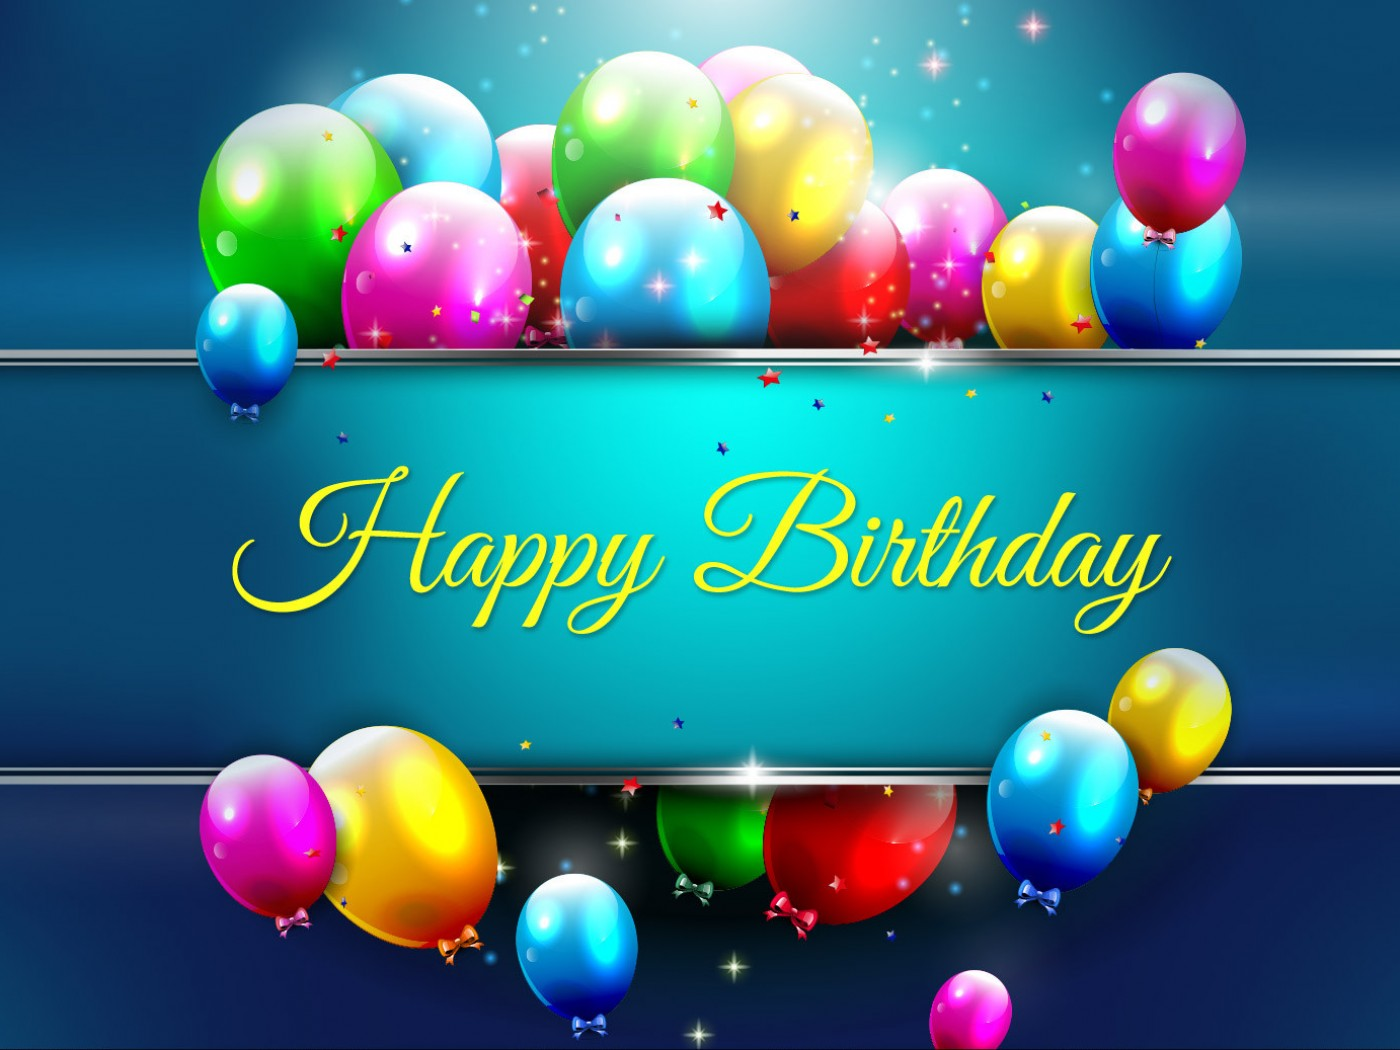 http://www.happybirthdaywishes-images.com/wp-content/uploads/2015/07/Happy-Birthday-pics.jpg